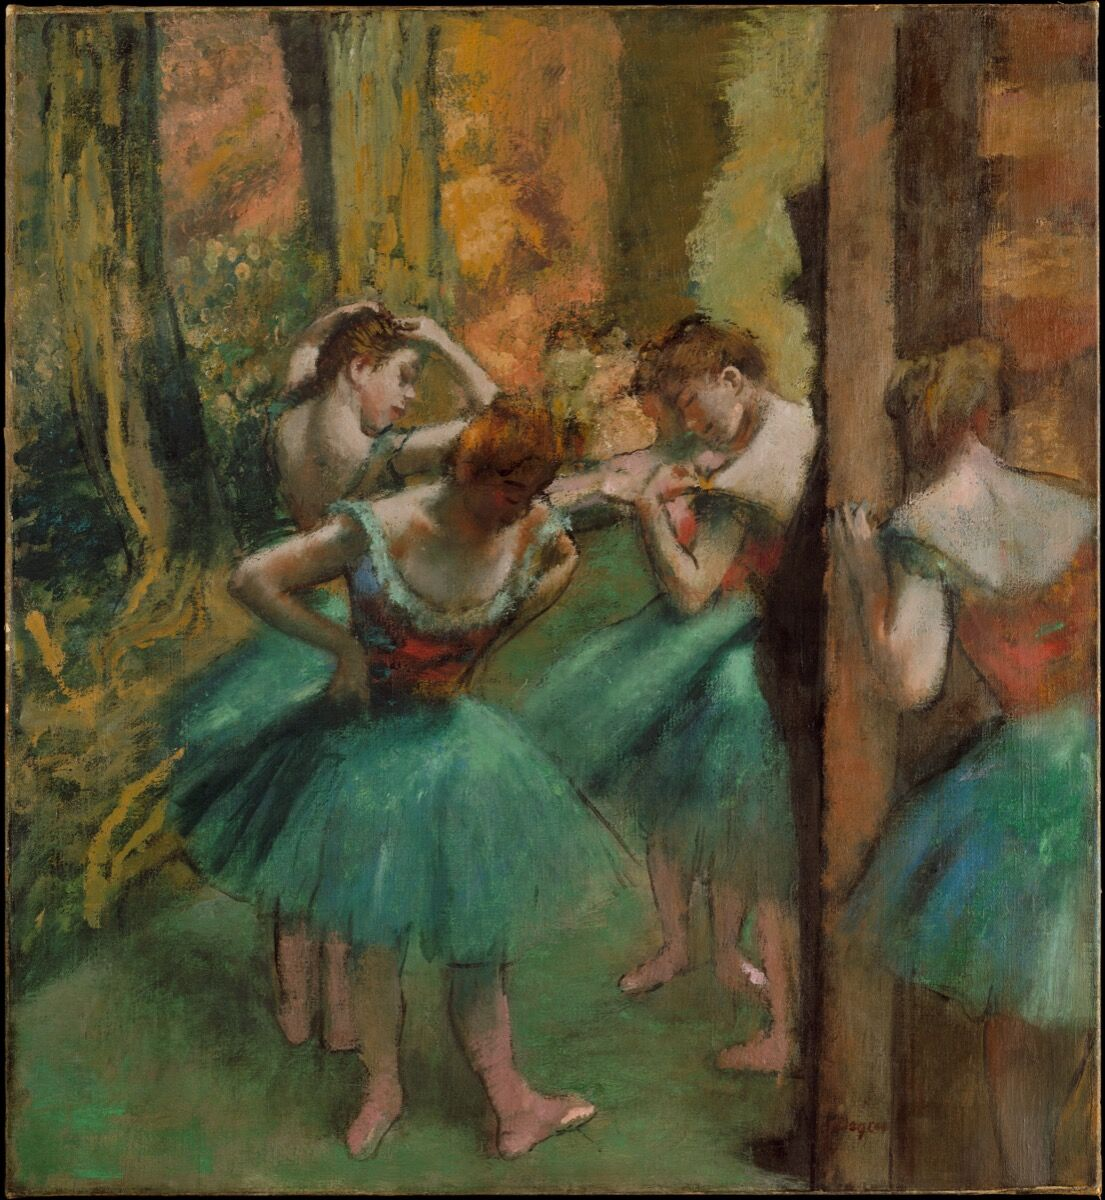 Edgar Degas S Ballet Dancers Hide A Sordid Backstage Reality Artsy